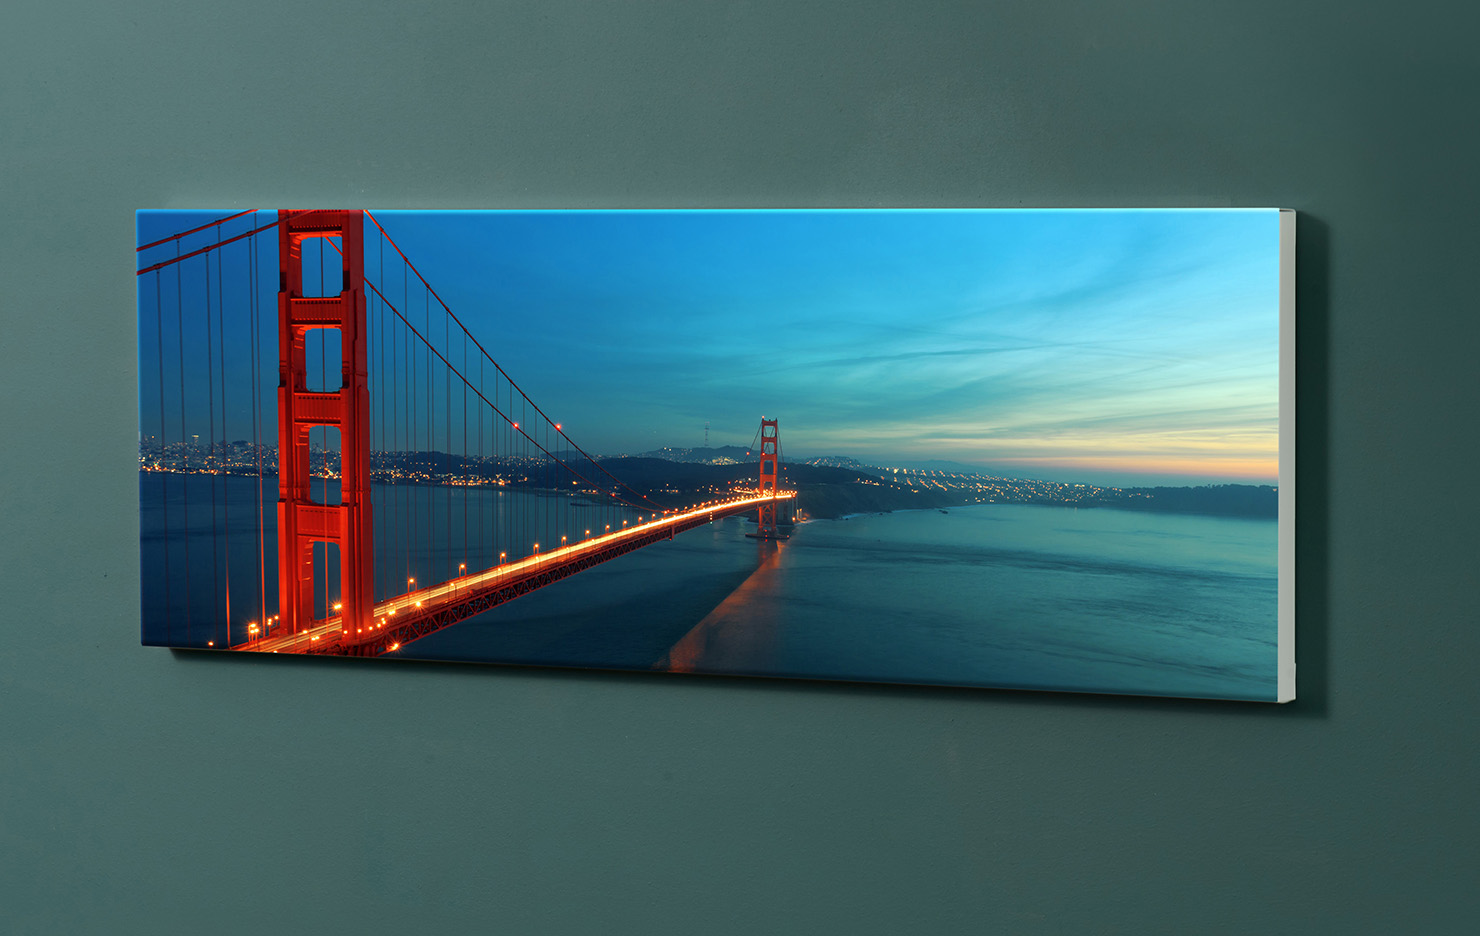 Magnettafel NOTIZ 90x30cm Motiv-Pinnwand M116 Golden Gate